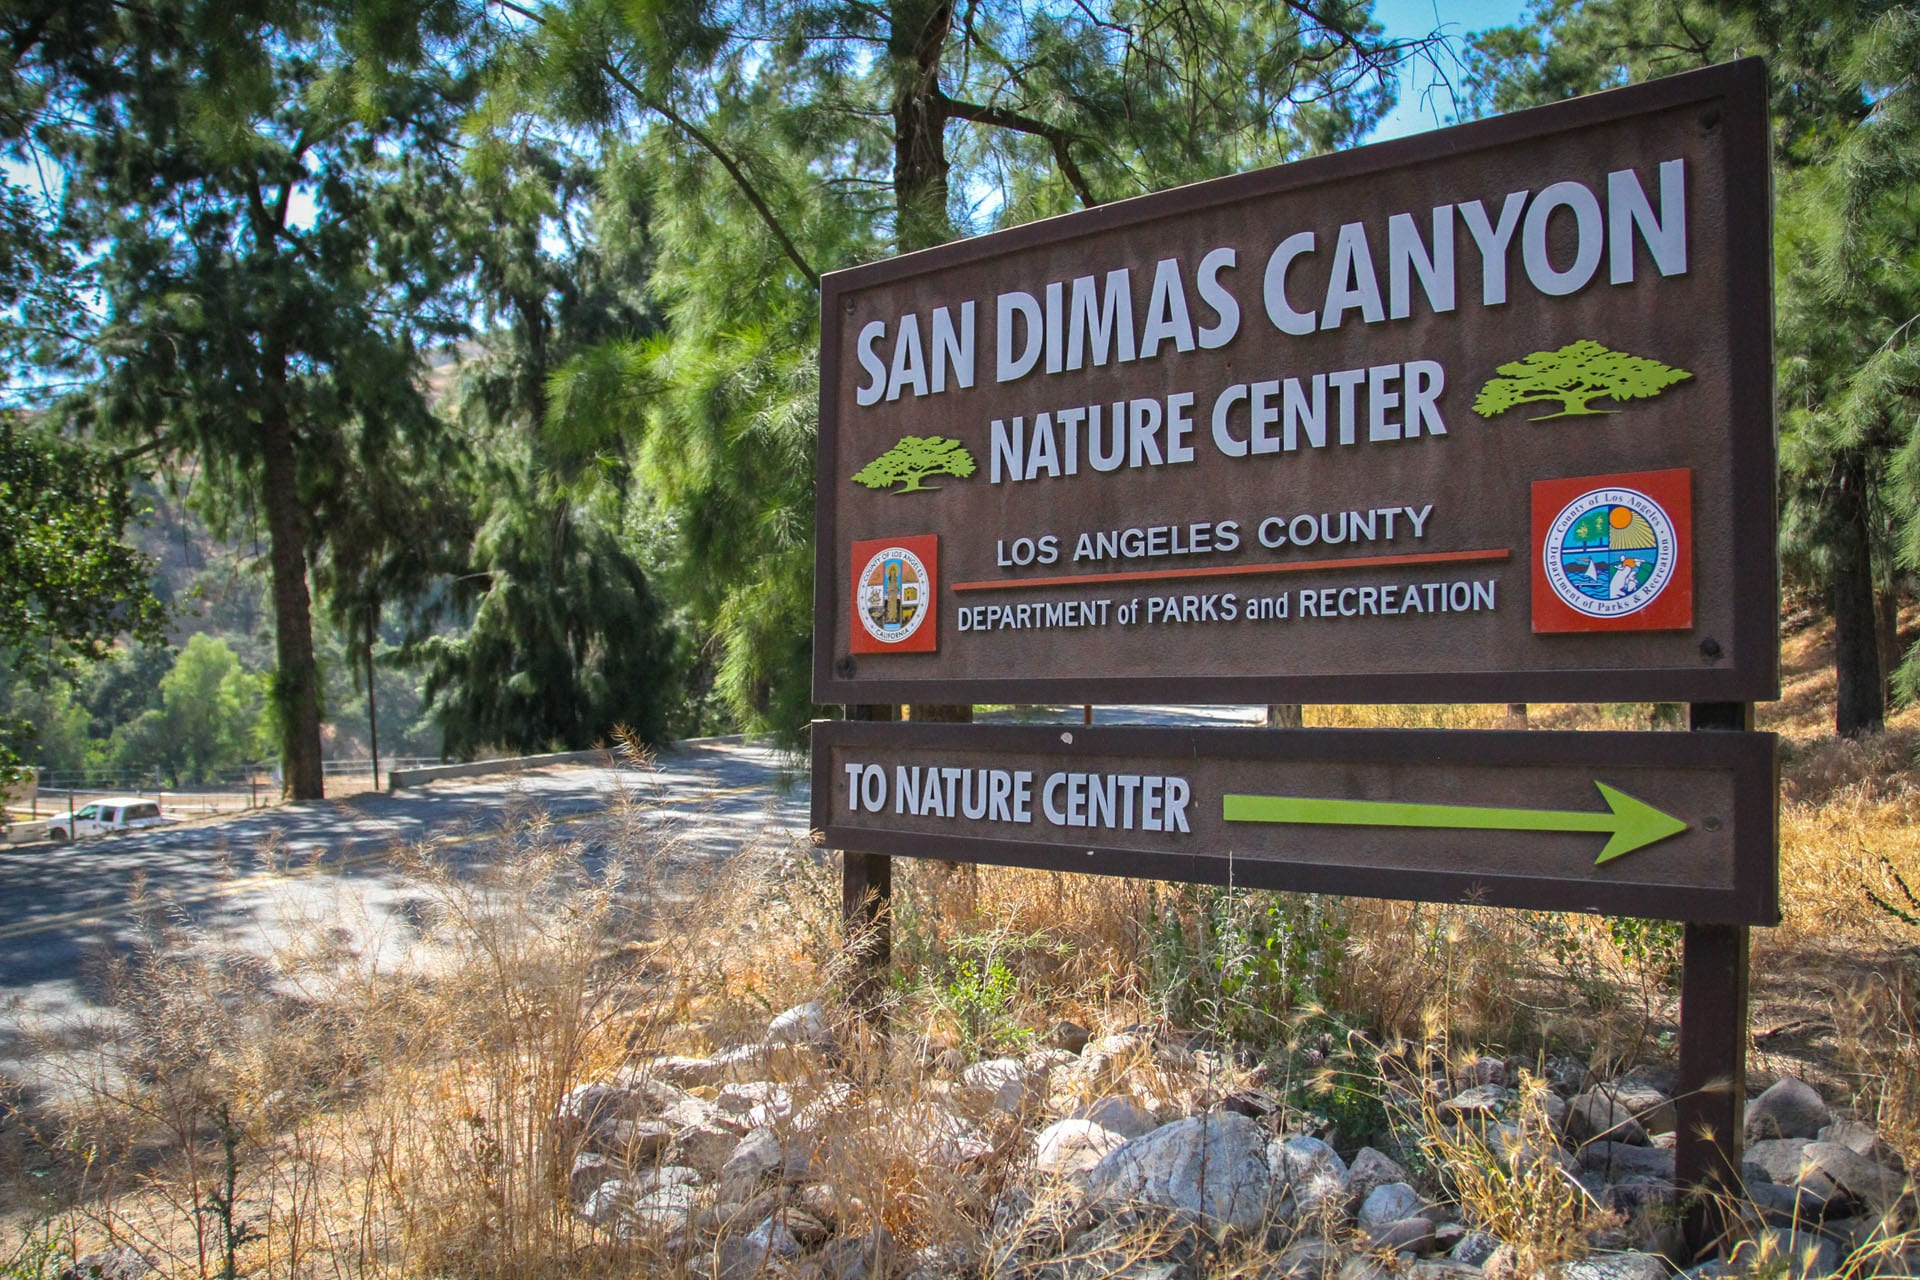 San Dimas Canyon Natural Center sign